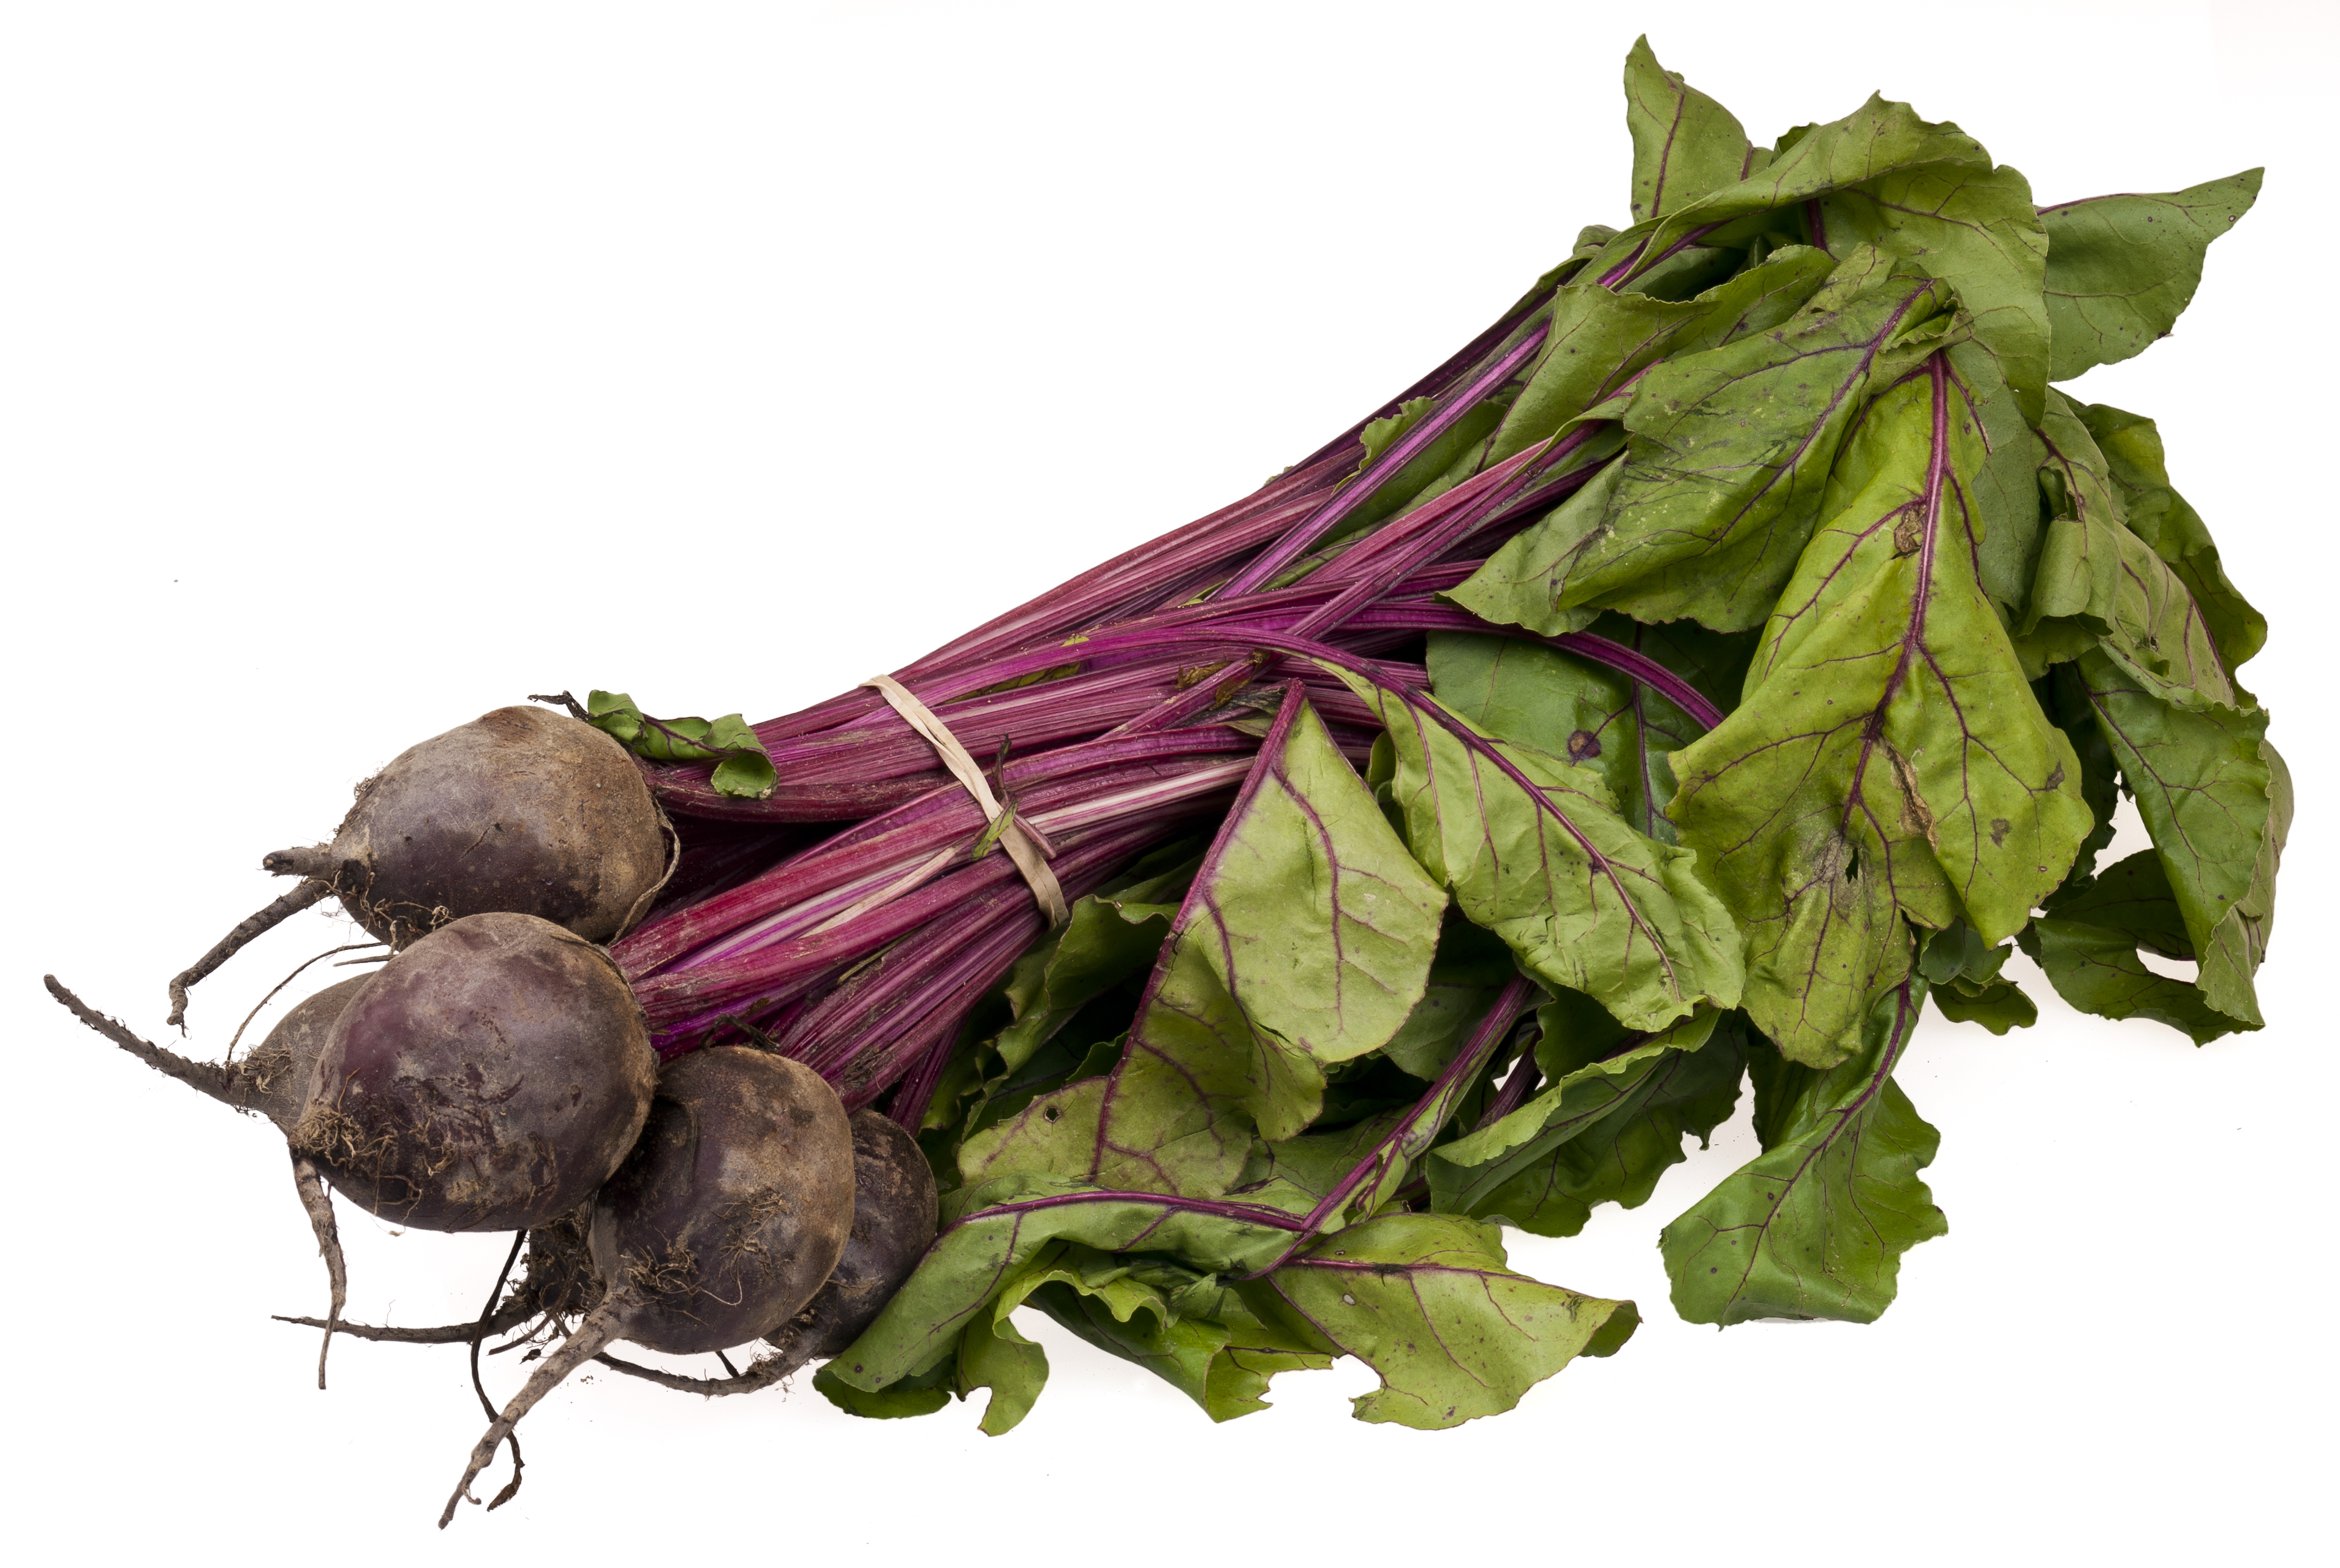 beets with long stems